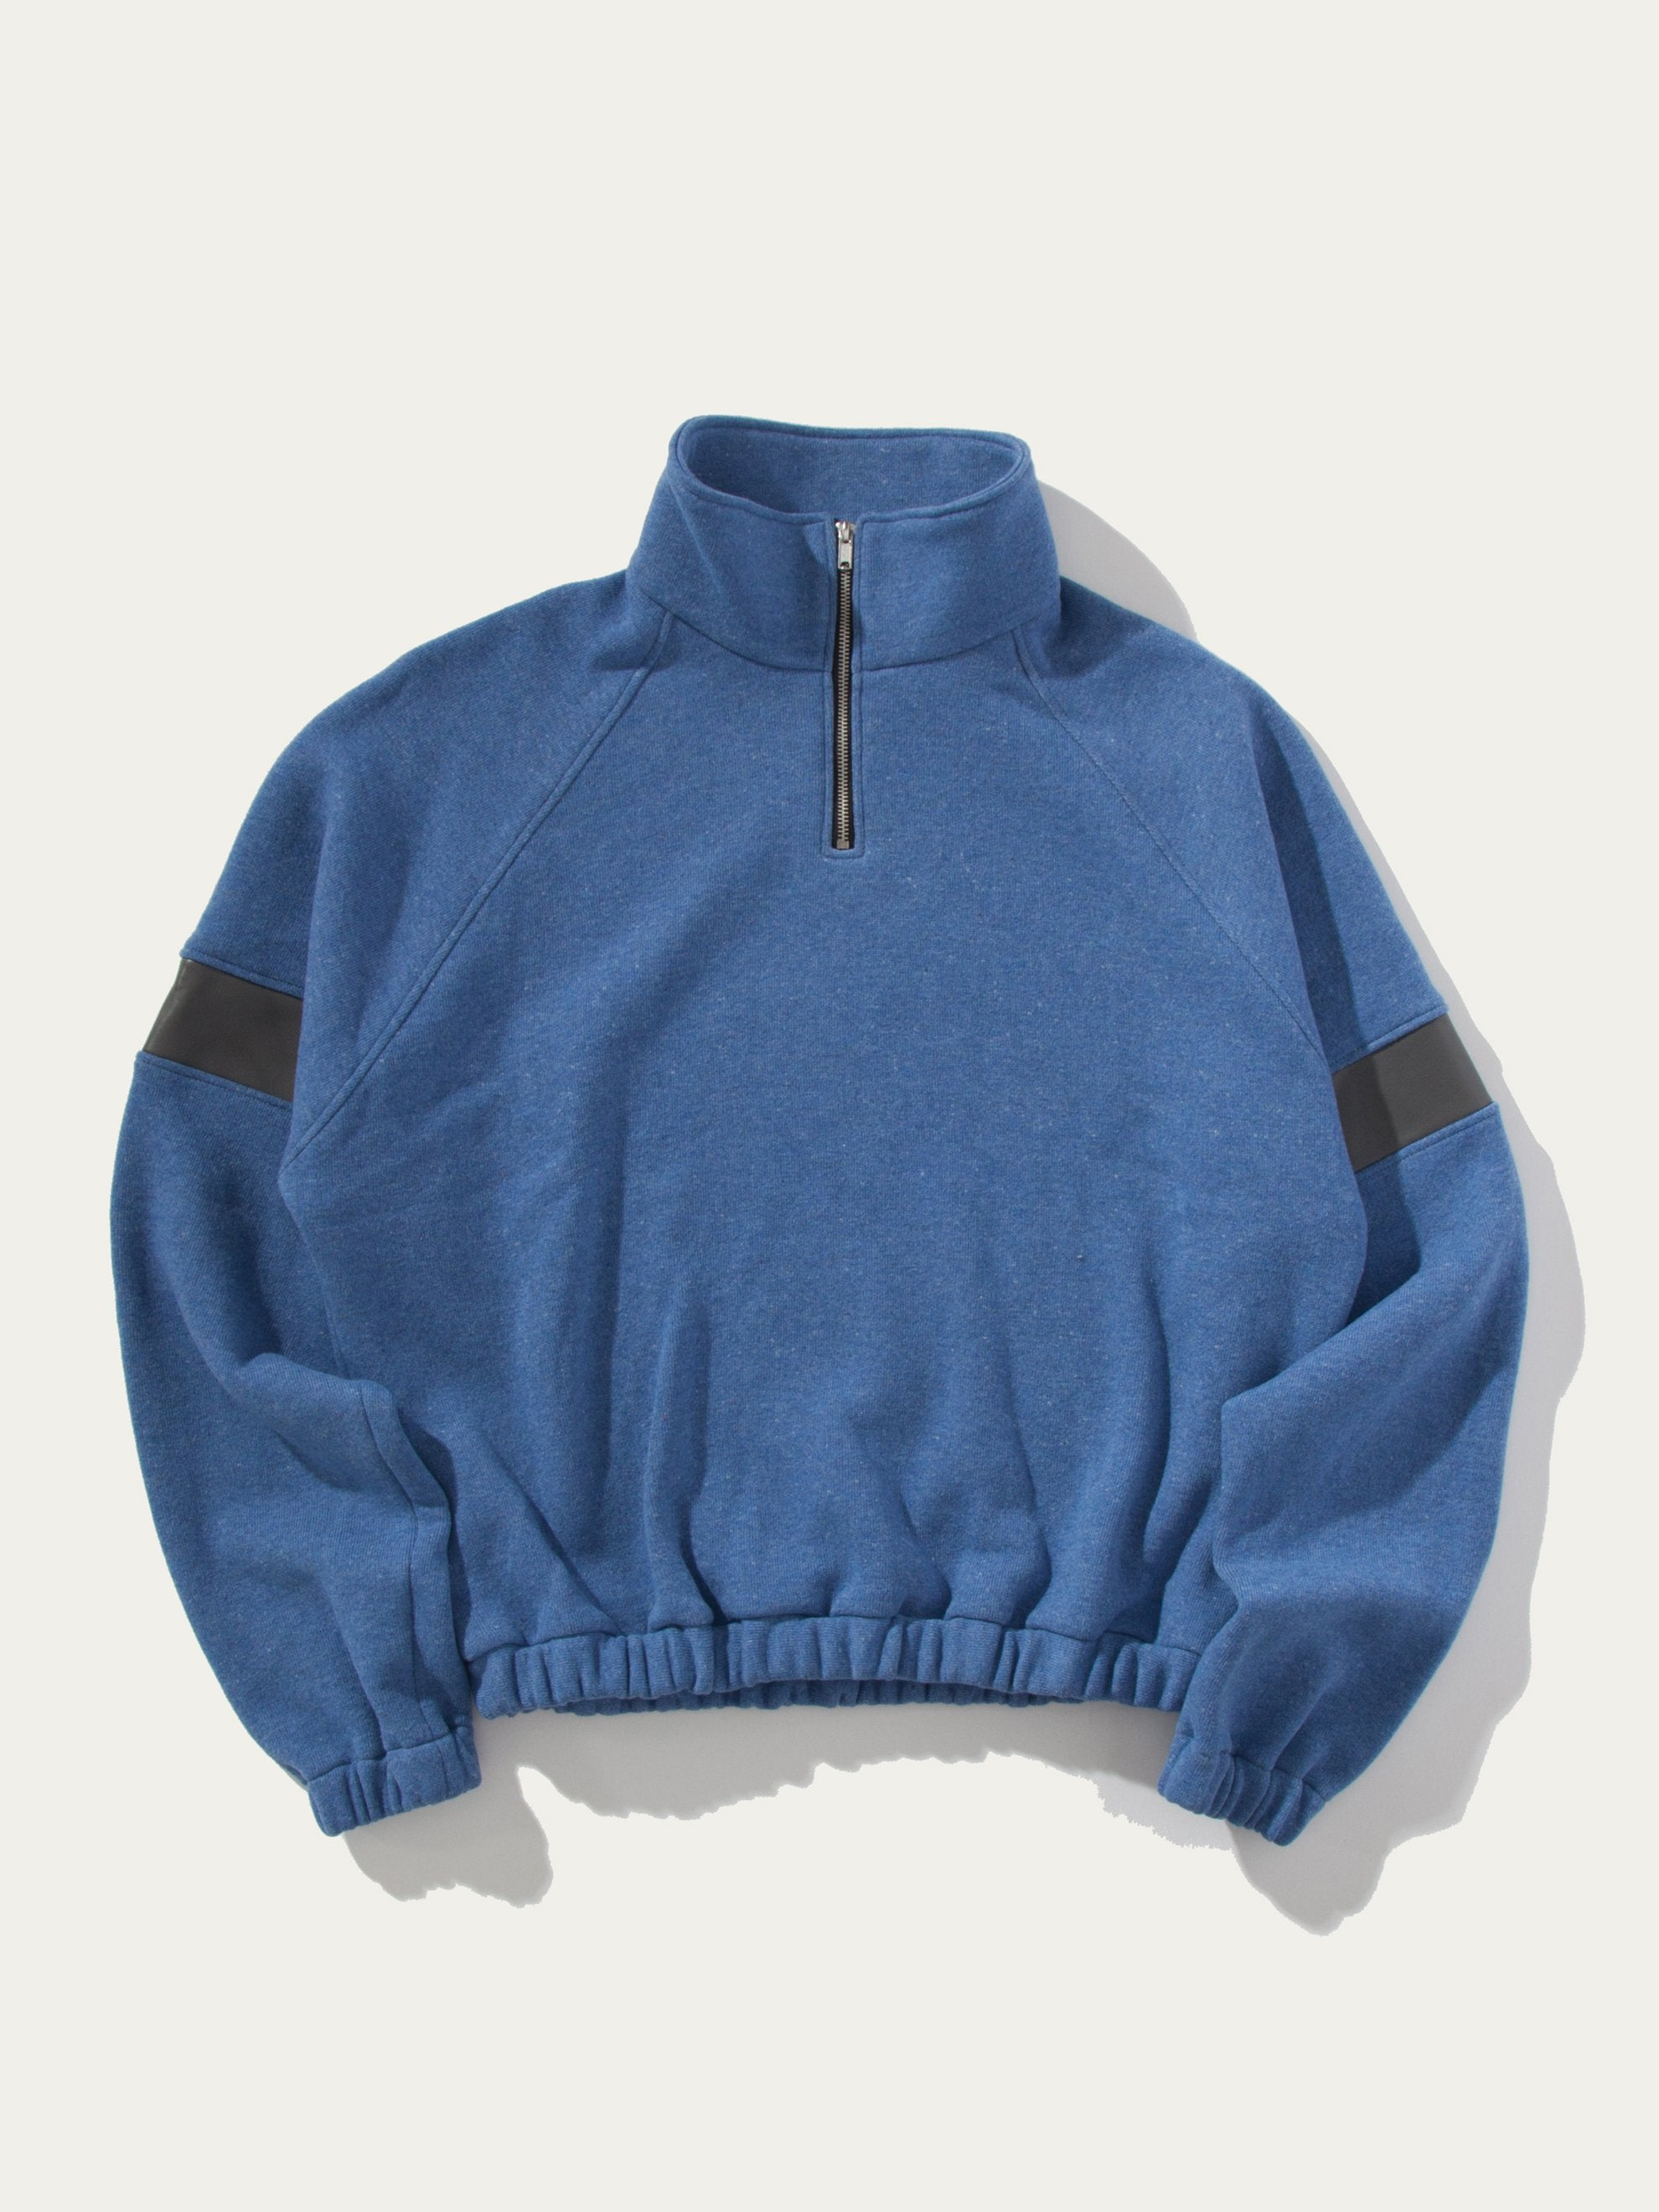 Blue Wool Pullover (Fake Leather) 1